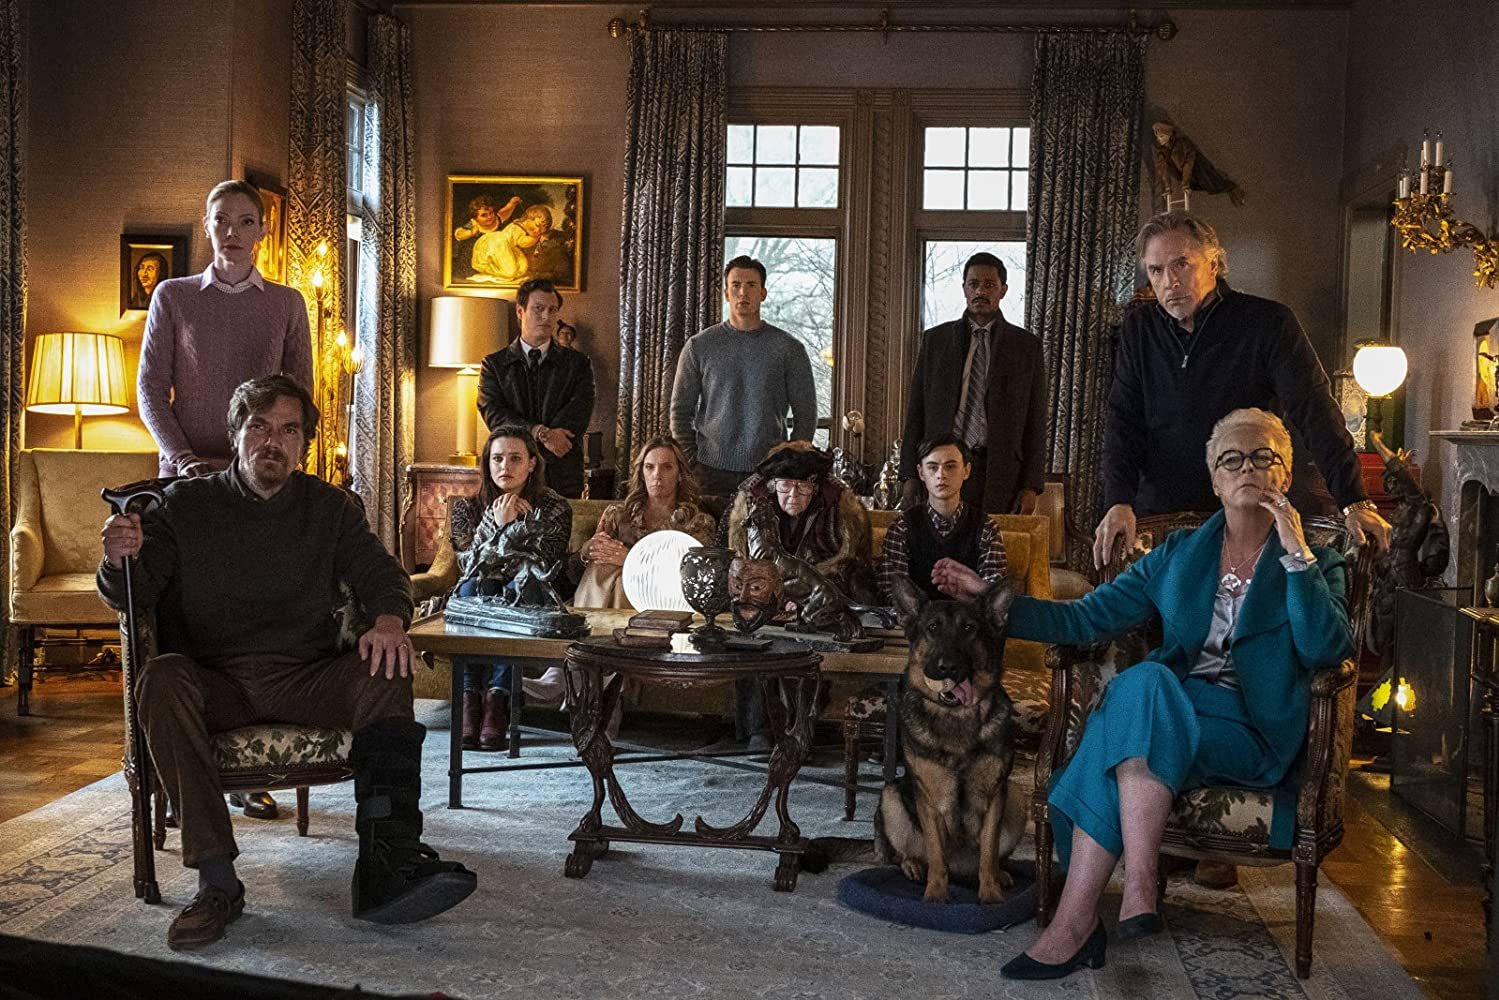 Jamie Lee Curtis, Don Johnson, Toni Collette, Chris Evans, Noah Segan, Michael Shannon, Riki Lindhome, LaKeith Stanfield, Jaeden Martell, and Katherine Langford in Knives Out (2019)